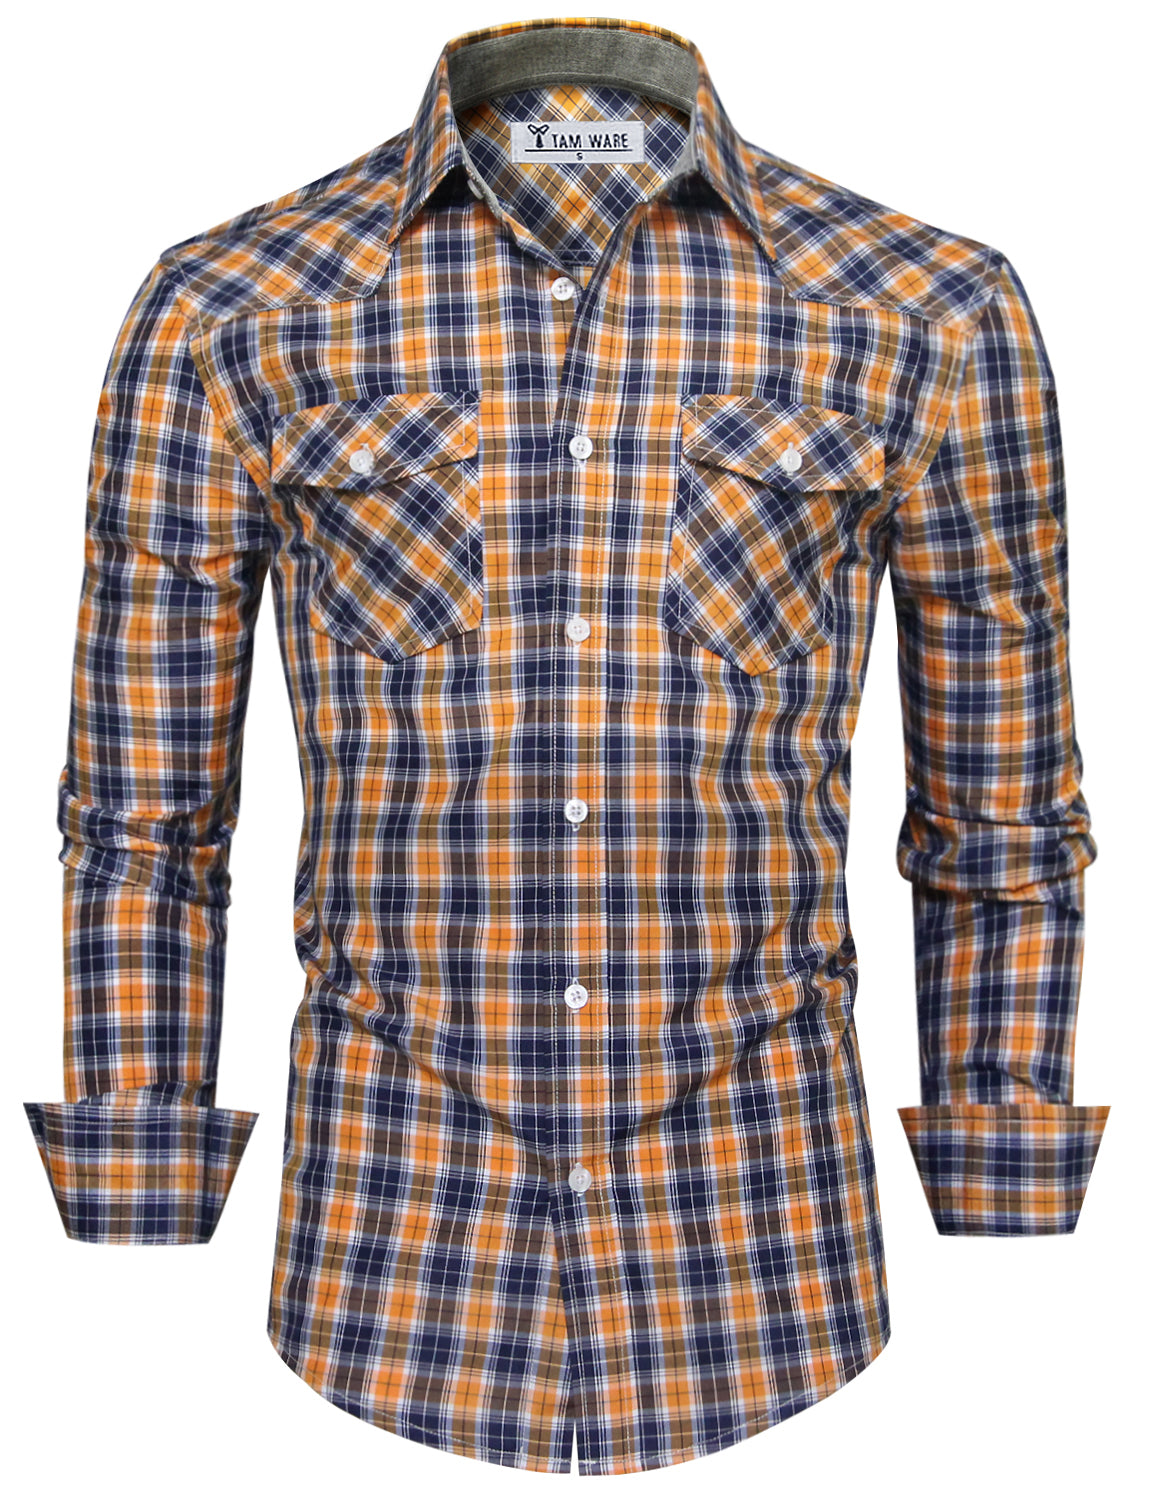 TAM WARE Men's Chest Pockets Checkered Long Sleeve Button Down Shirt